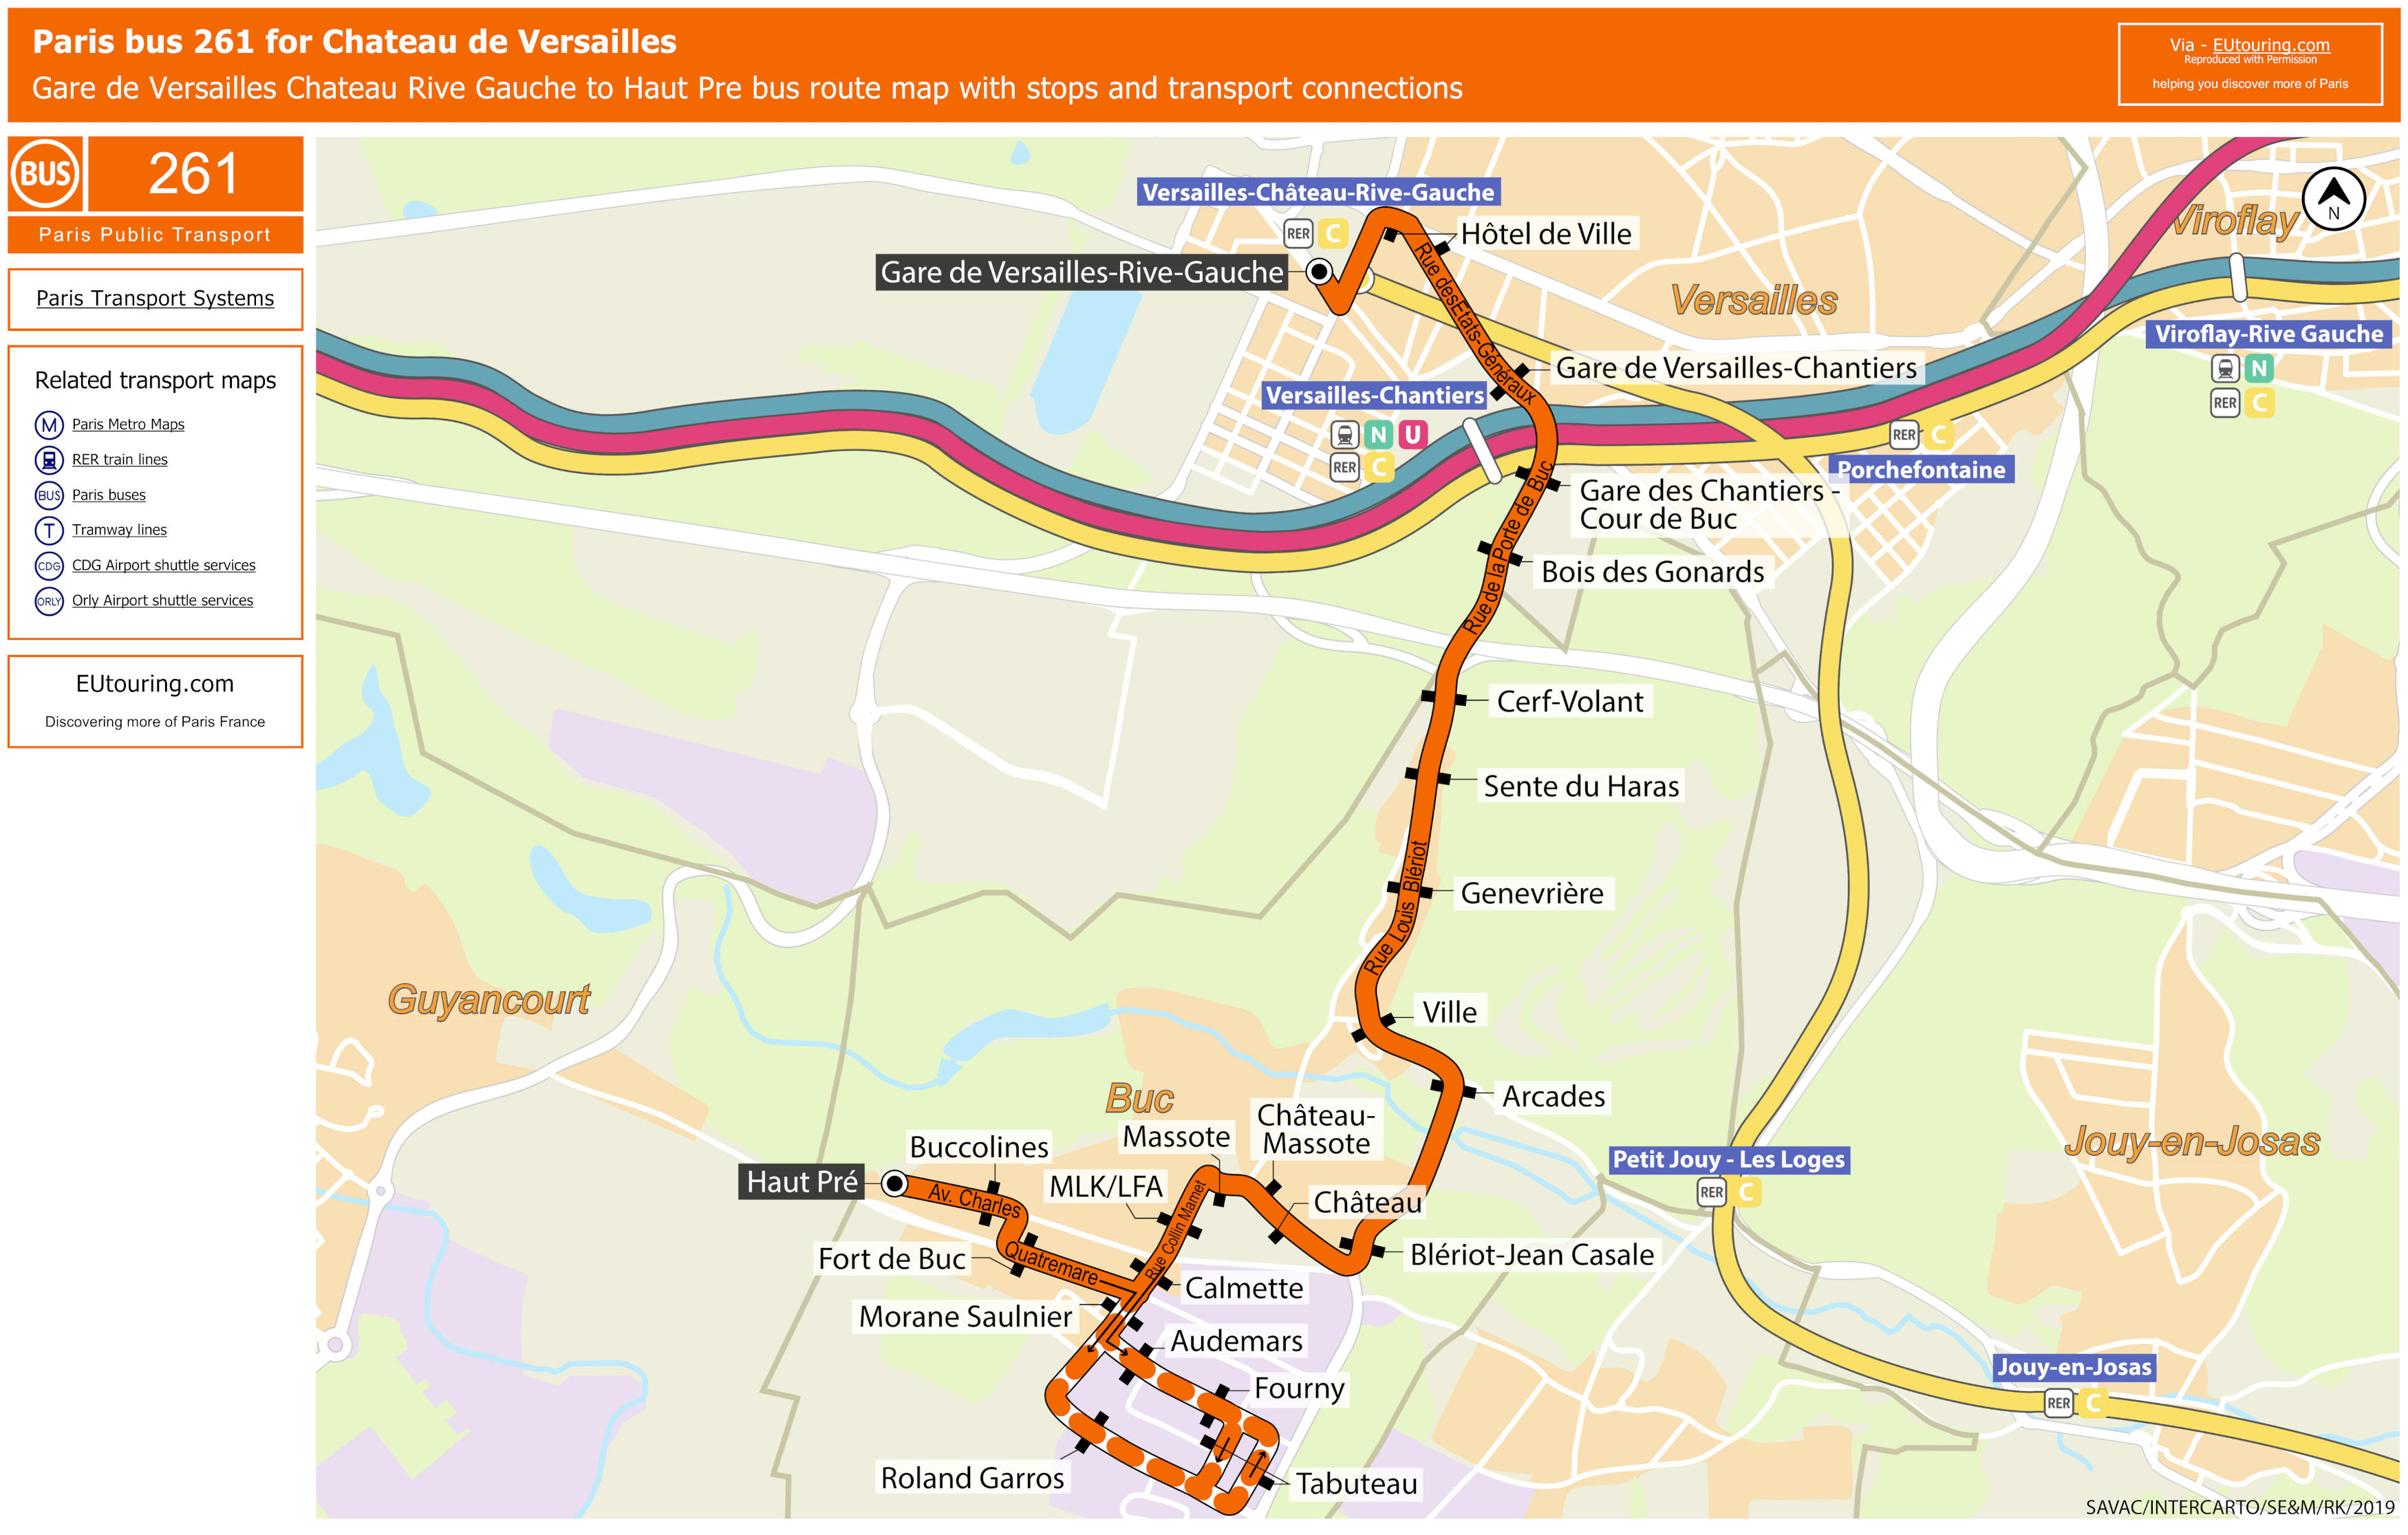 How to get to BUC - Biblioteca Universitaria Centrale in Trento by Bus or Train?